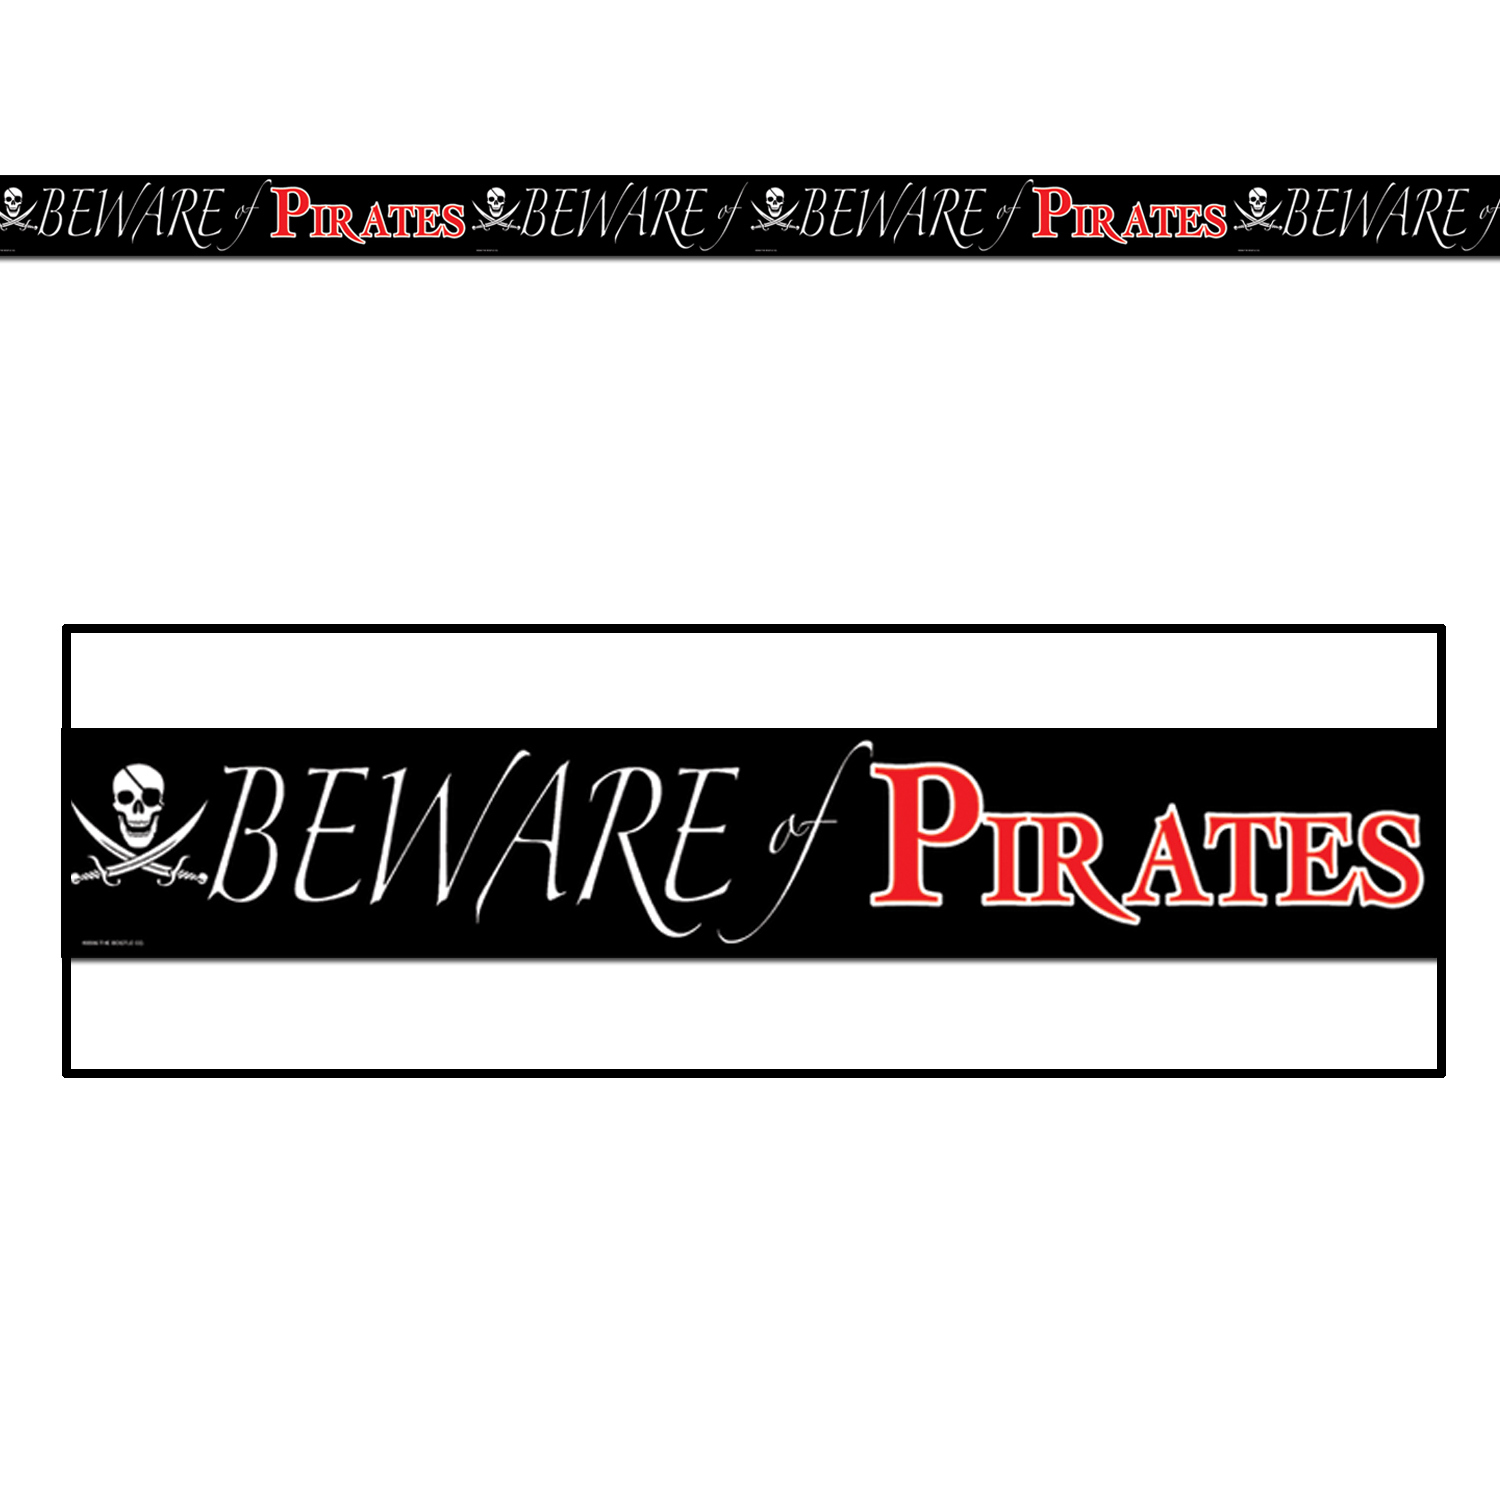 Beware Of Pirates Party Tape (Pack of 12) Party Tape, Pirate Decor, All-weather tape, Cheap pirate supplies, Birthday ideas, Birthday supplies, Pirate events, Wholesale party supplies, Inexpensive party goods